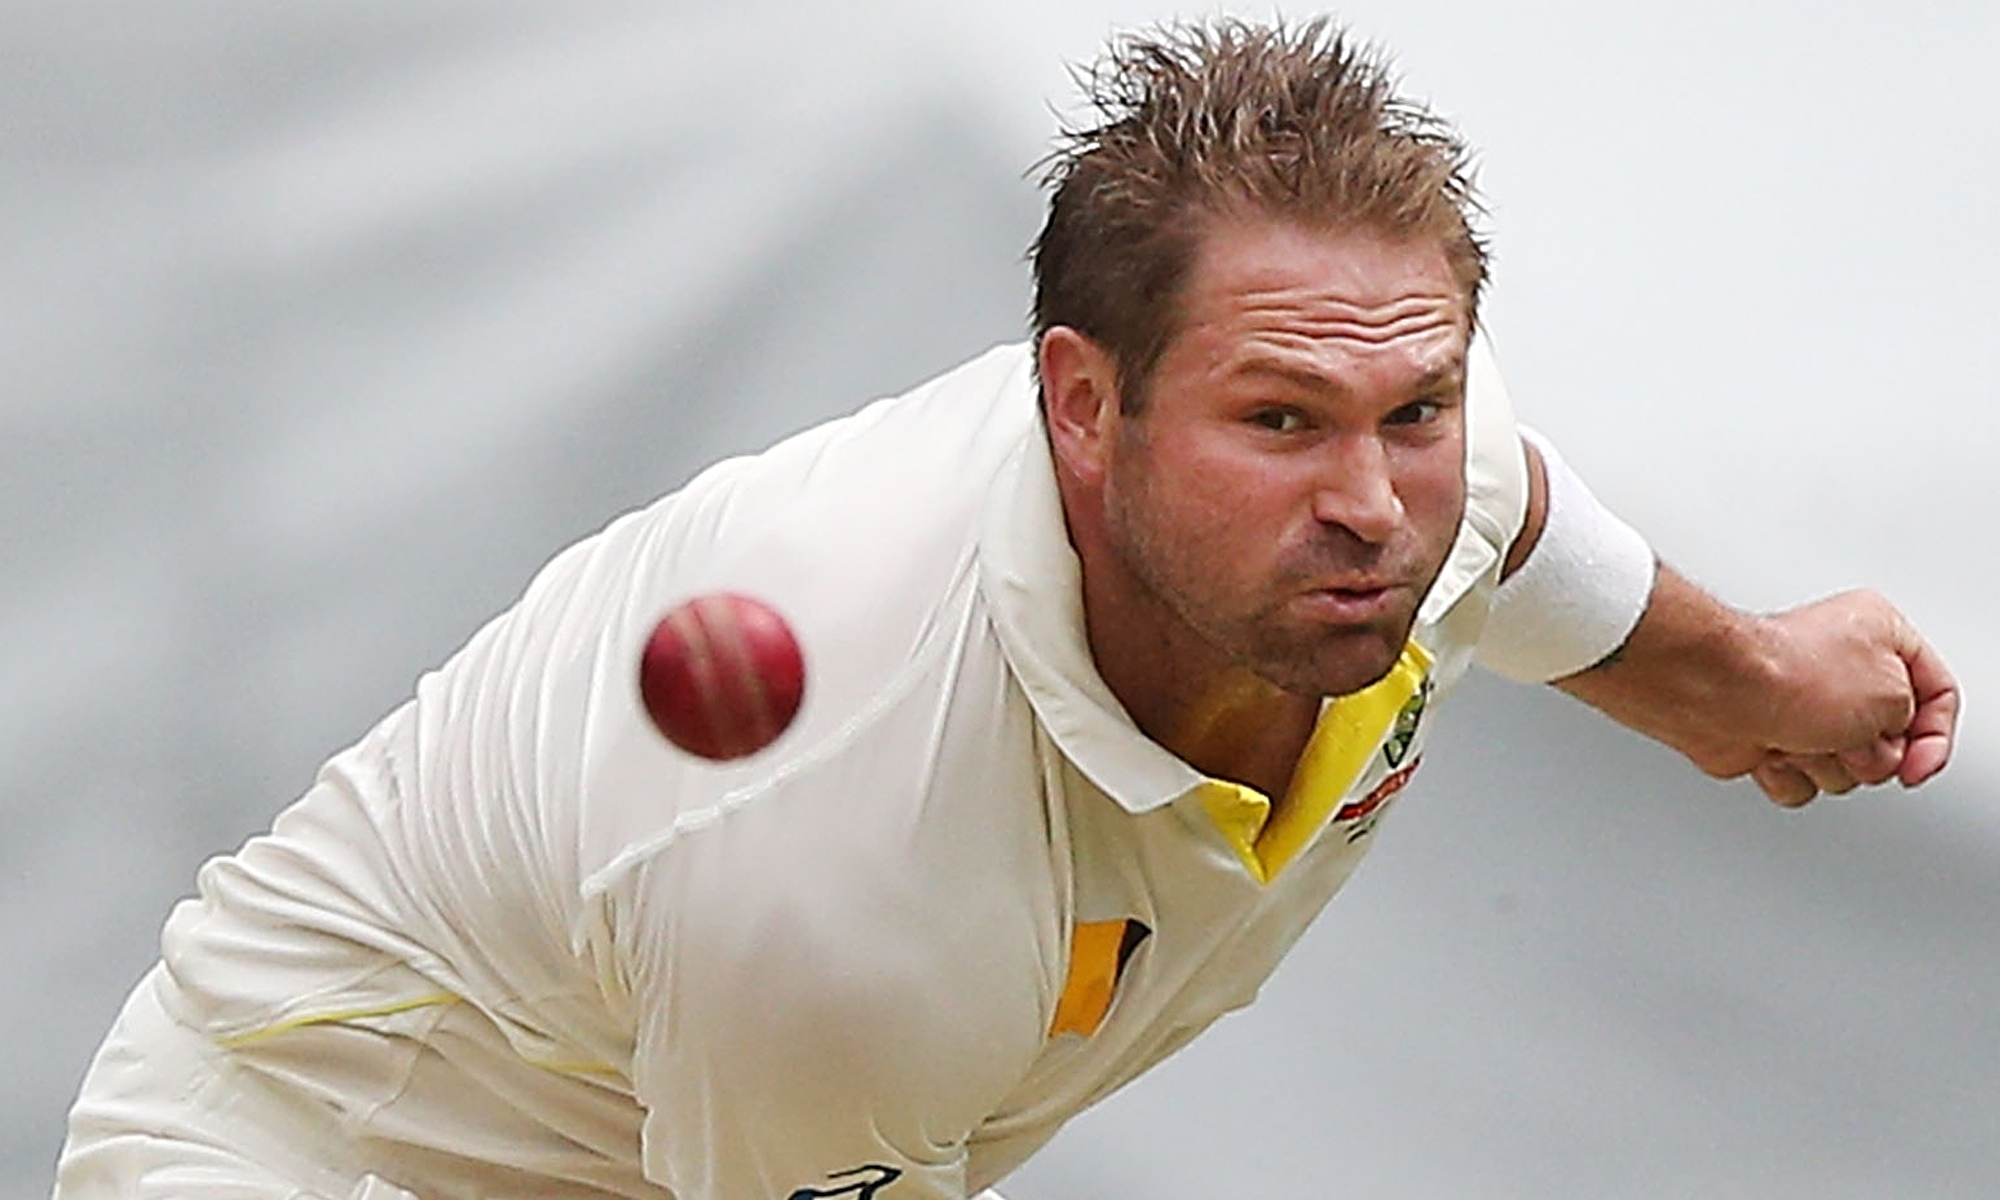 The Ashes tour held unpleasant news for Australian national cricket team fans as Ryan Harris retired with a knee injury. (Photo Public Domain)